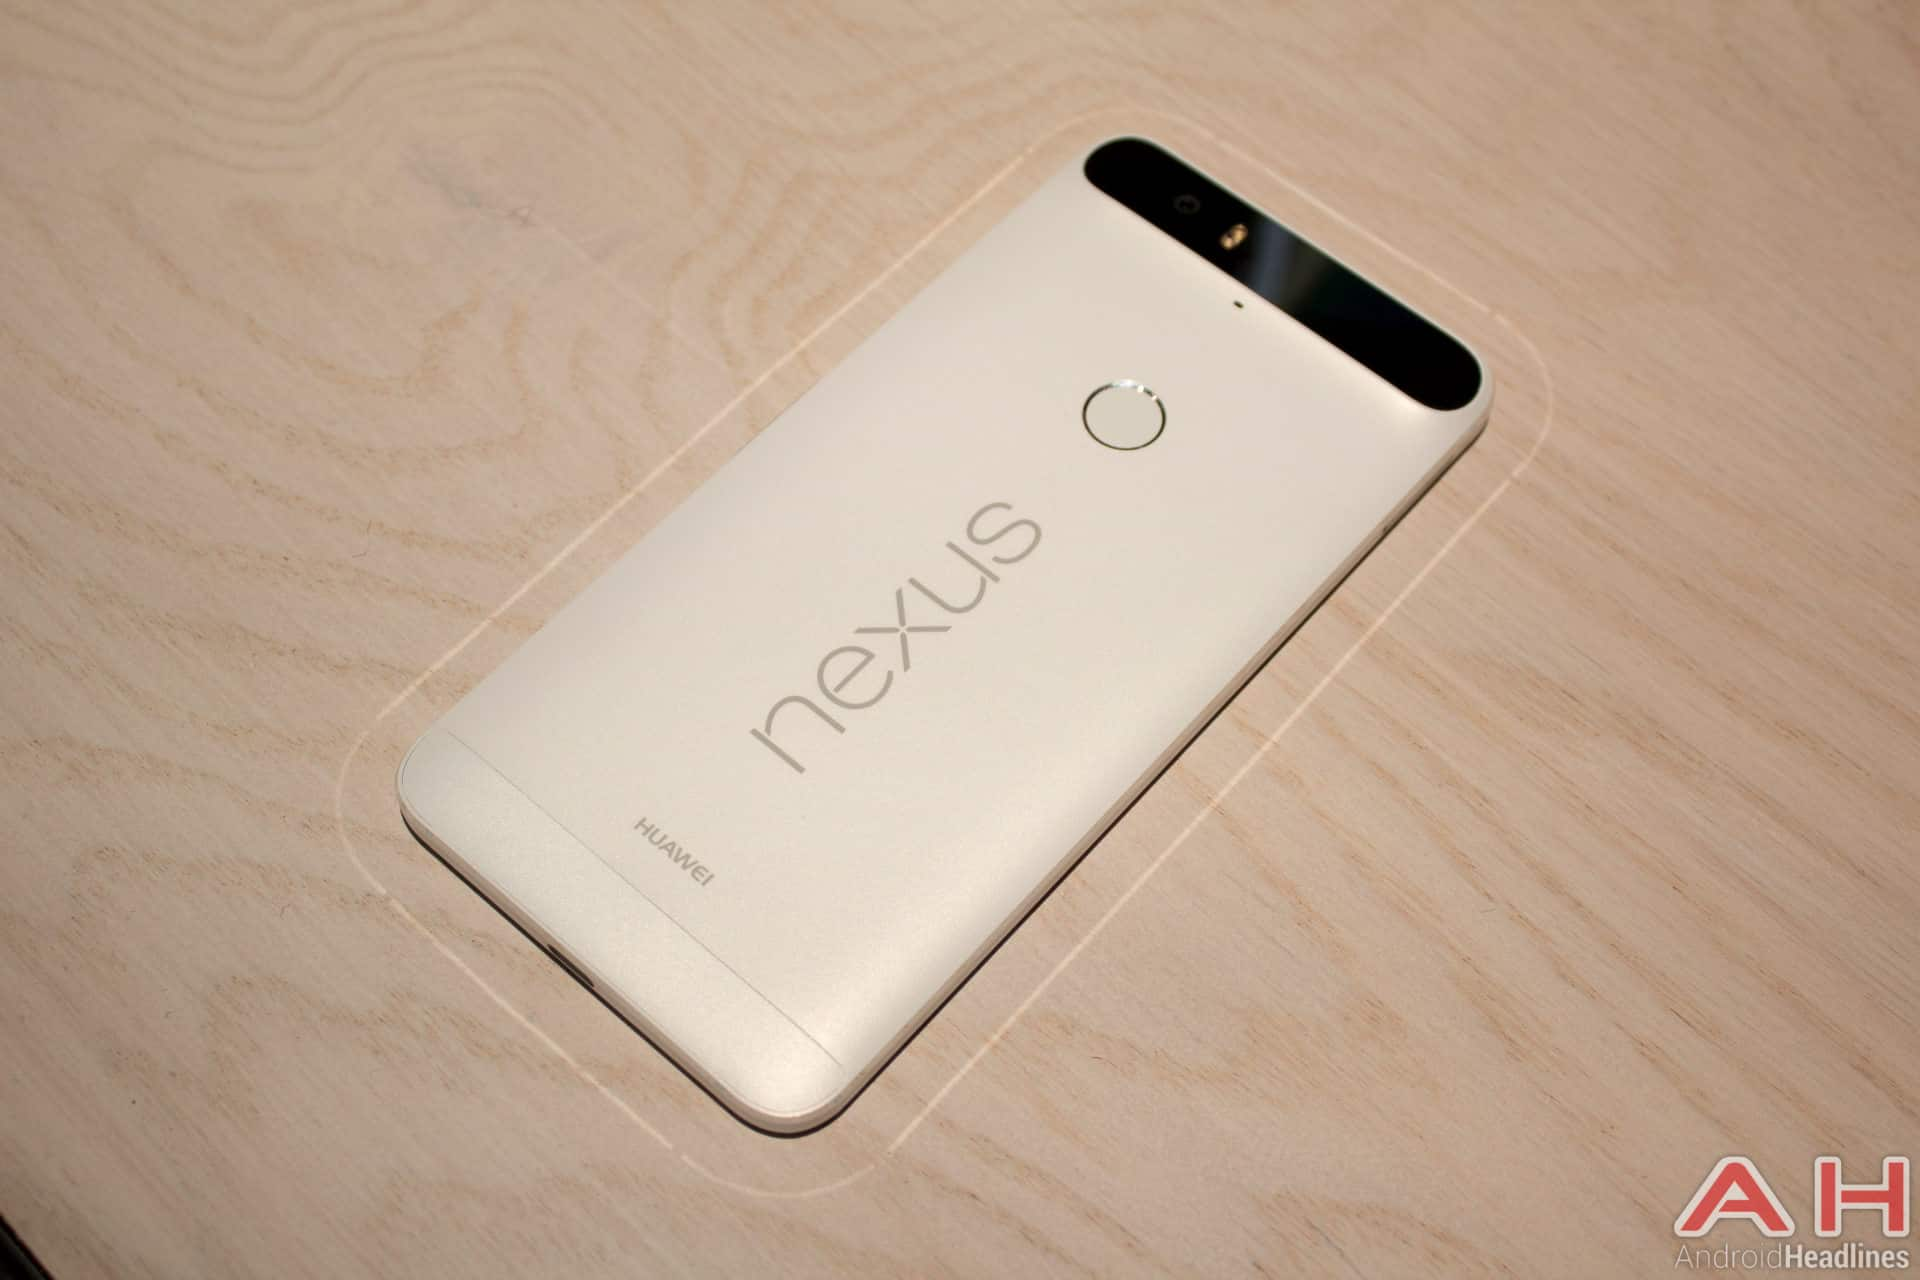 Nexus 6P Hands On Batch 2 AH 7